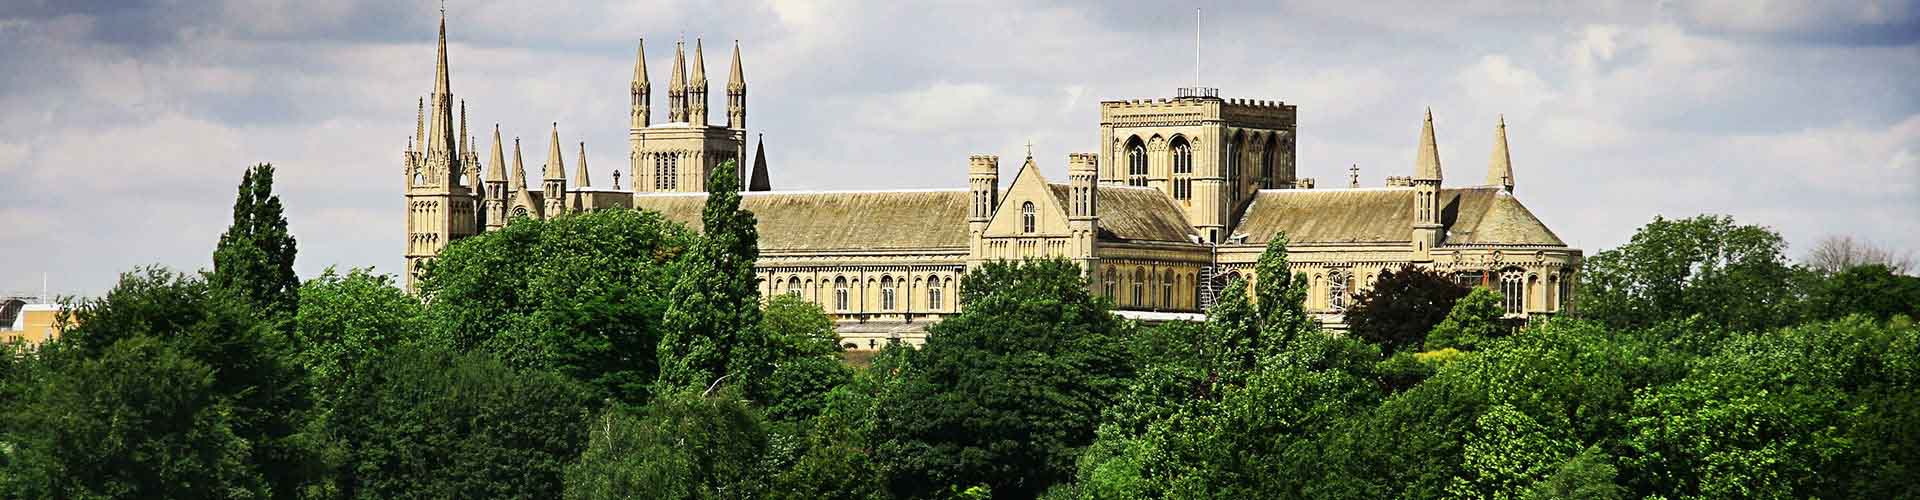 Peterborough – Hostels in Peterborough. Maps for Peterborough, Photos and Reviews for each hostel in Peterborough.